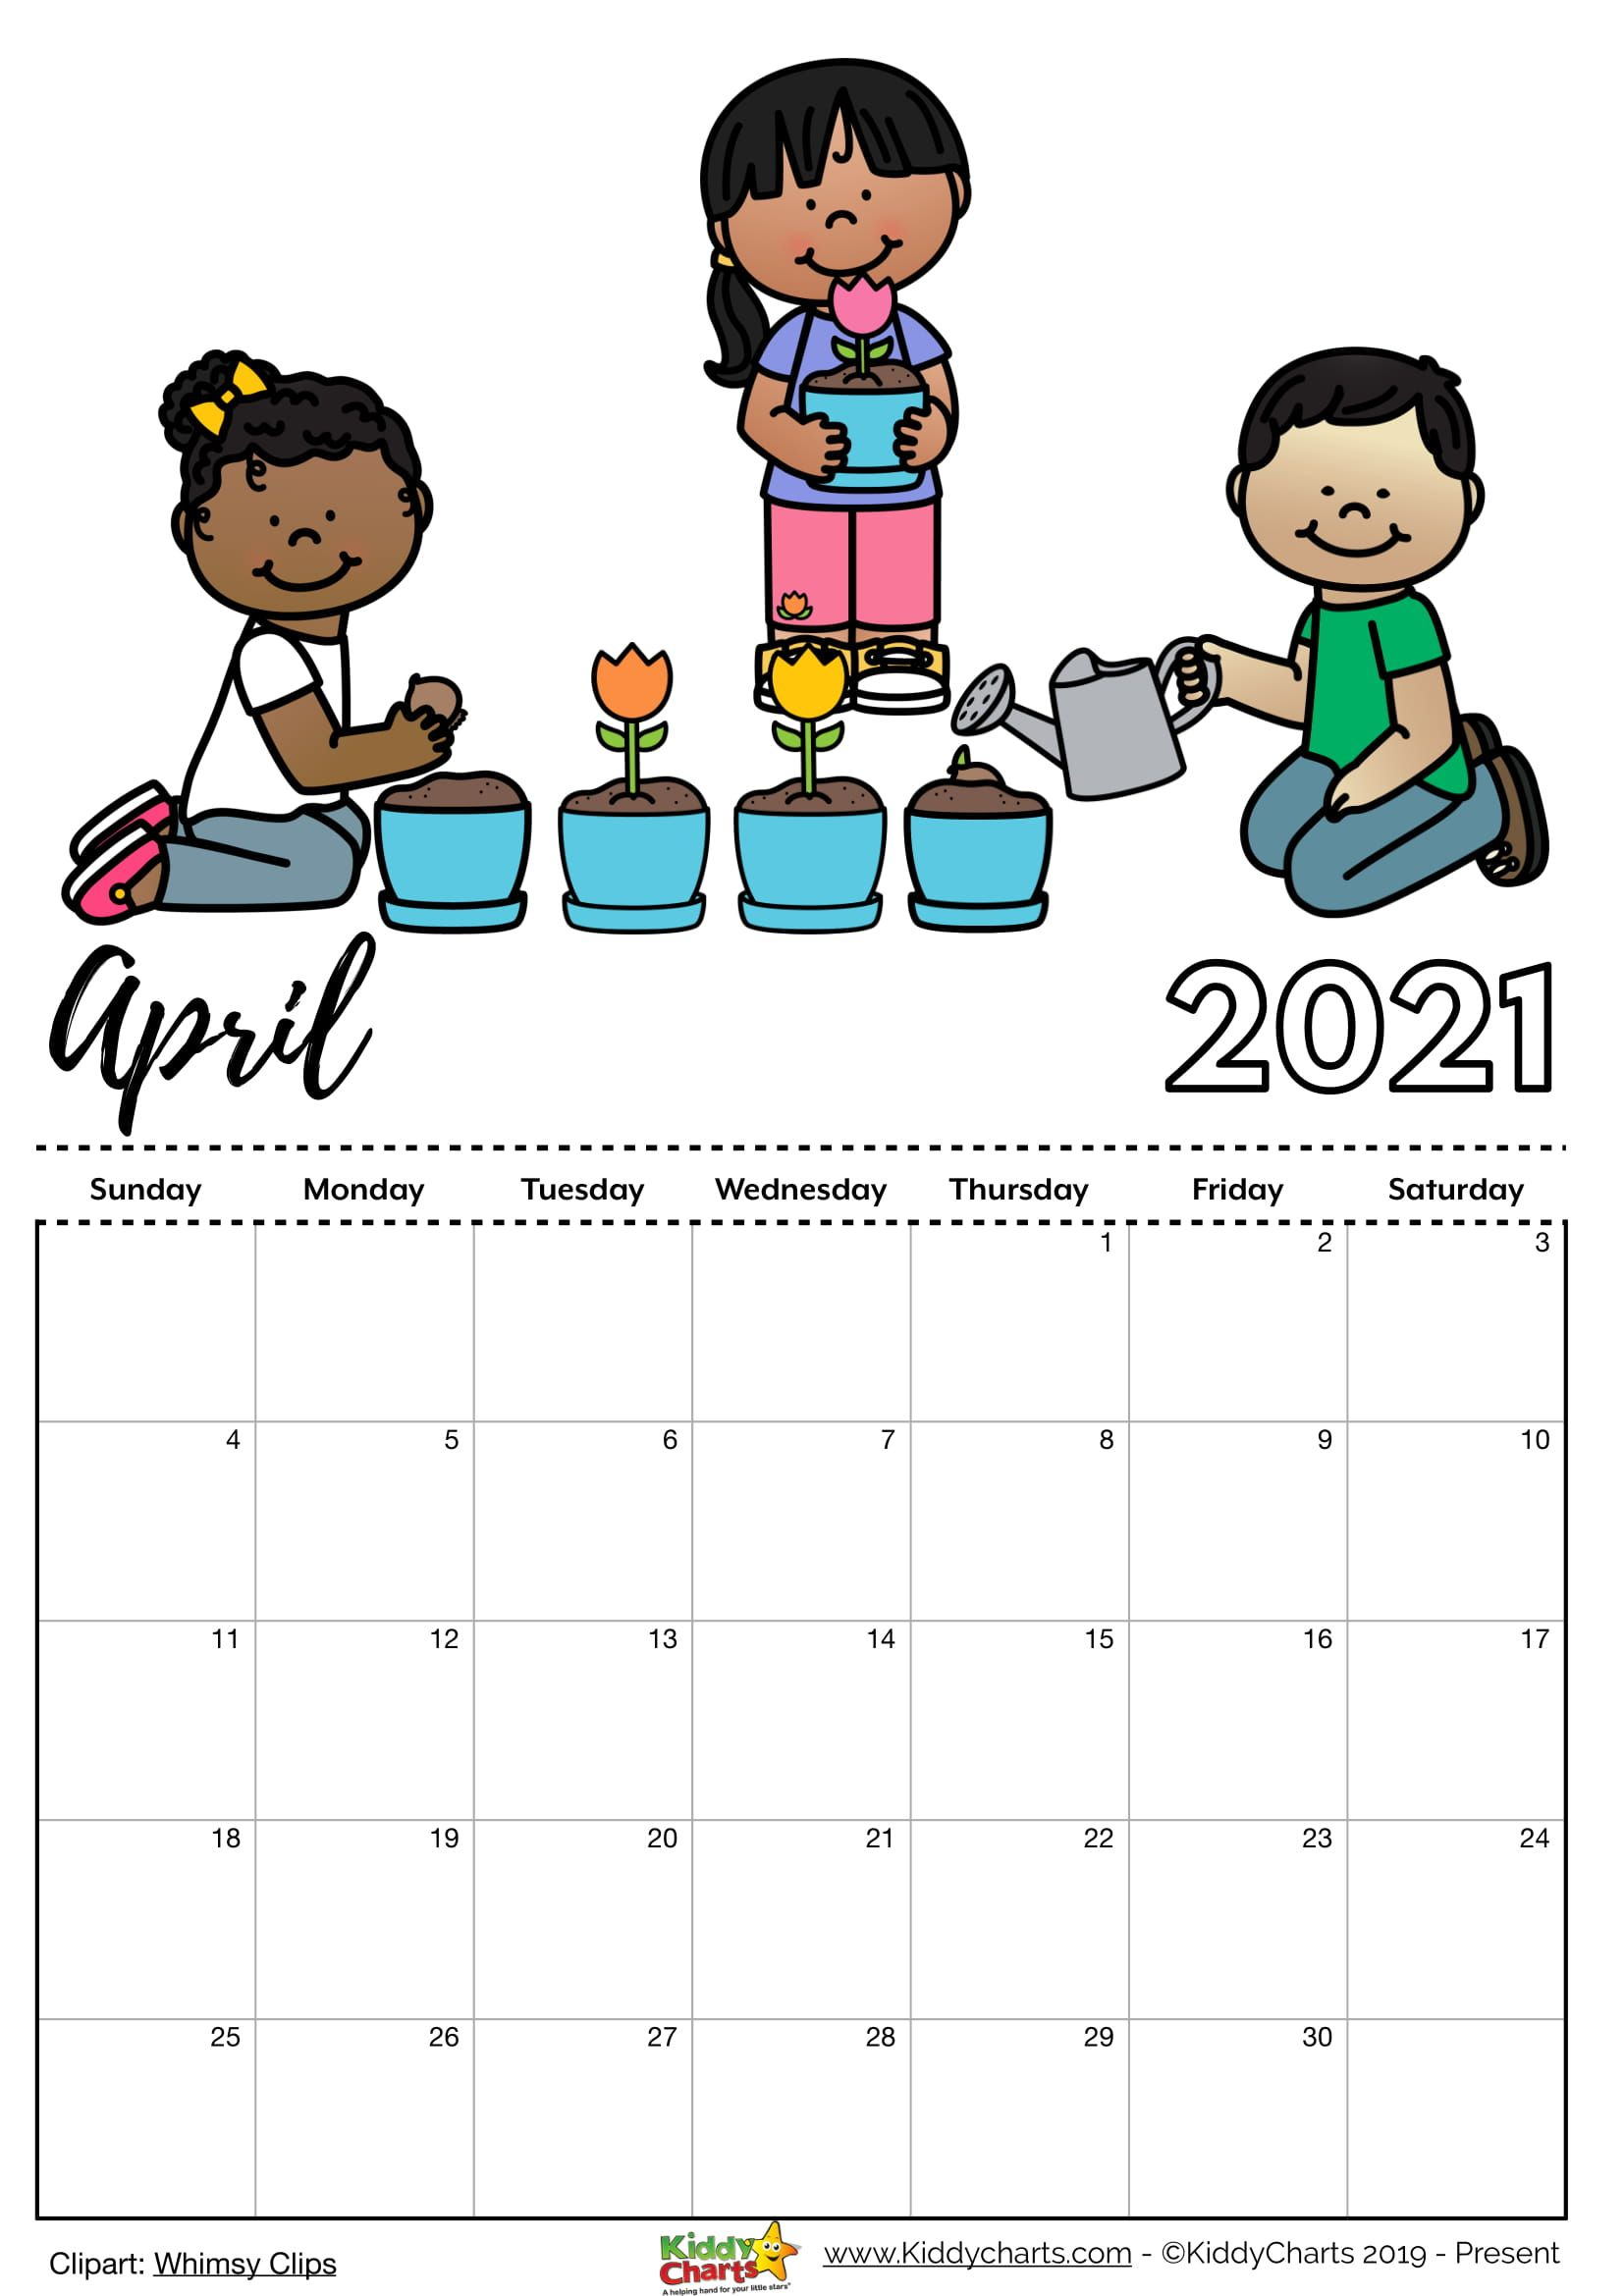 Check Our New Free Printable 2021 Calendar In 2020 Kids Calendar Calendar Calendar Printables